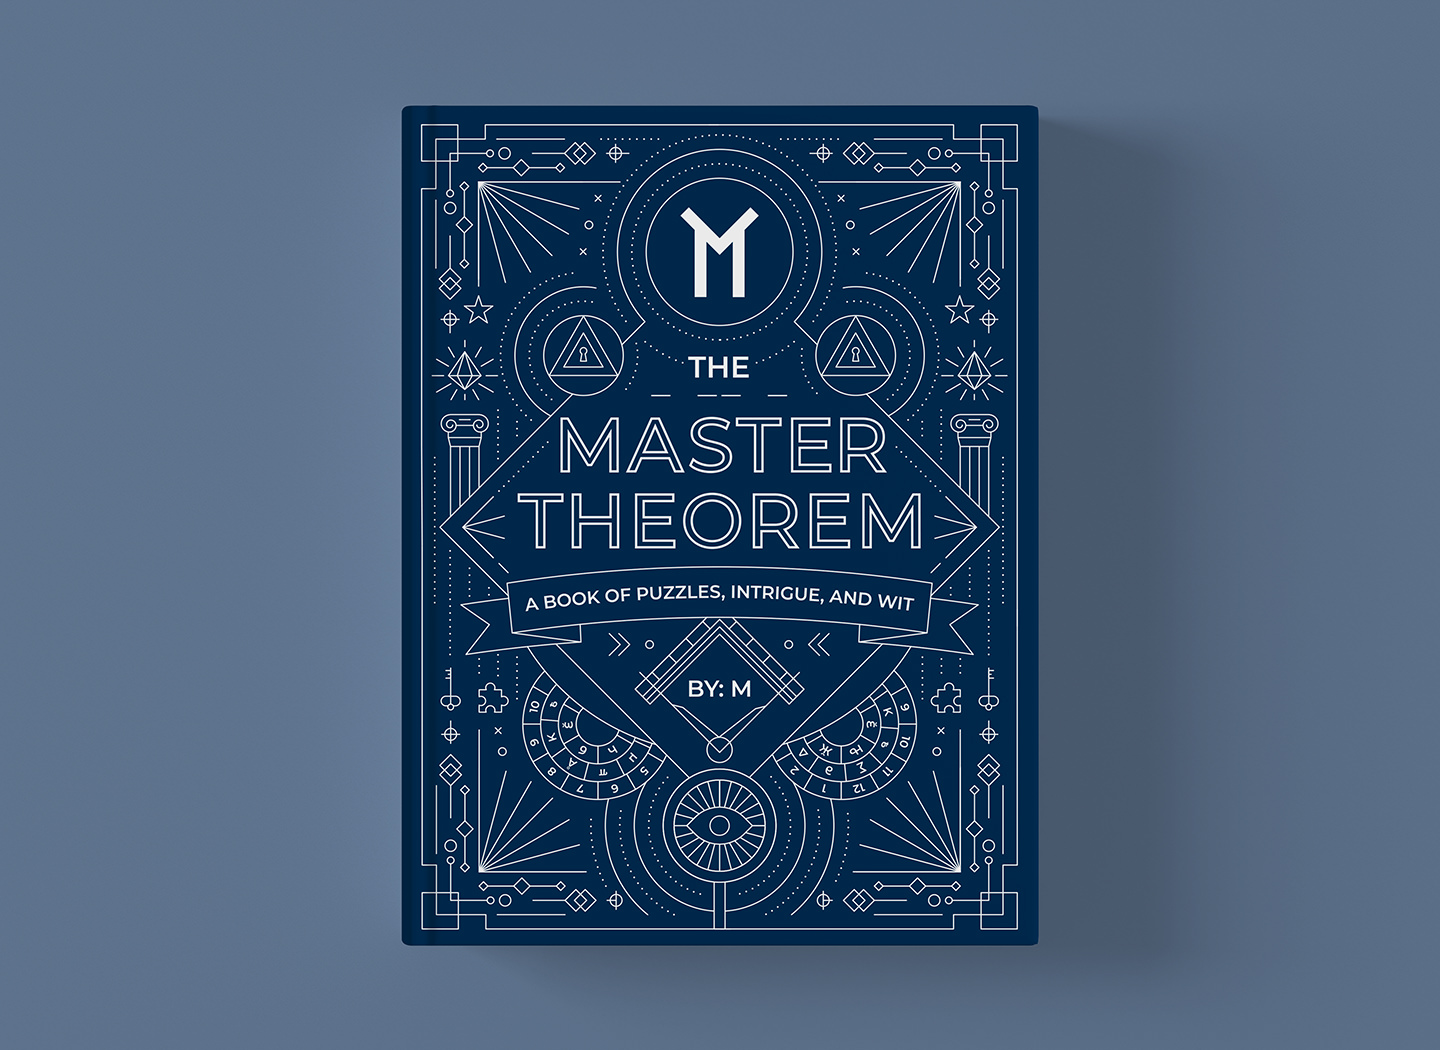 The Master Theorem